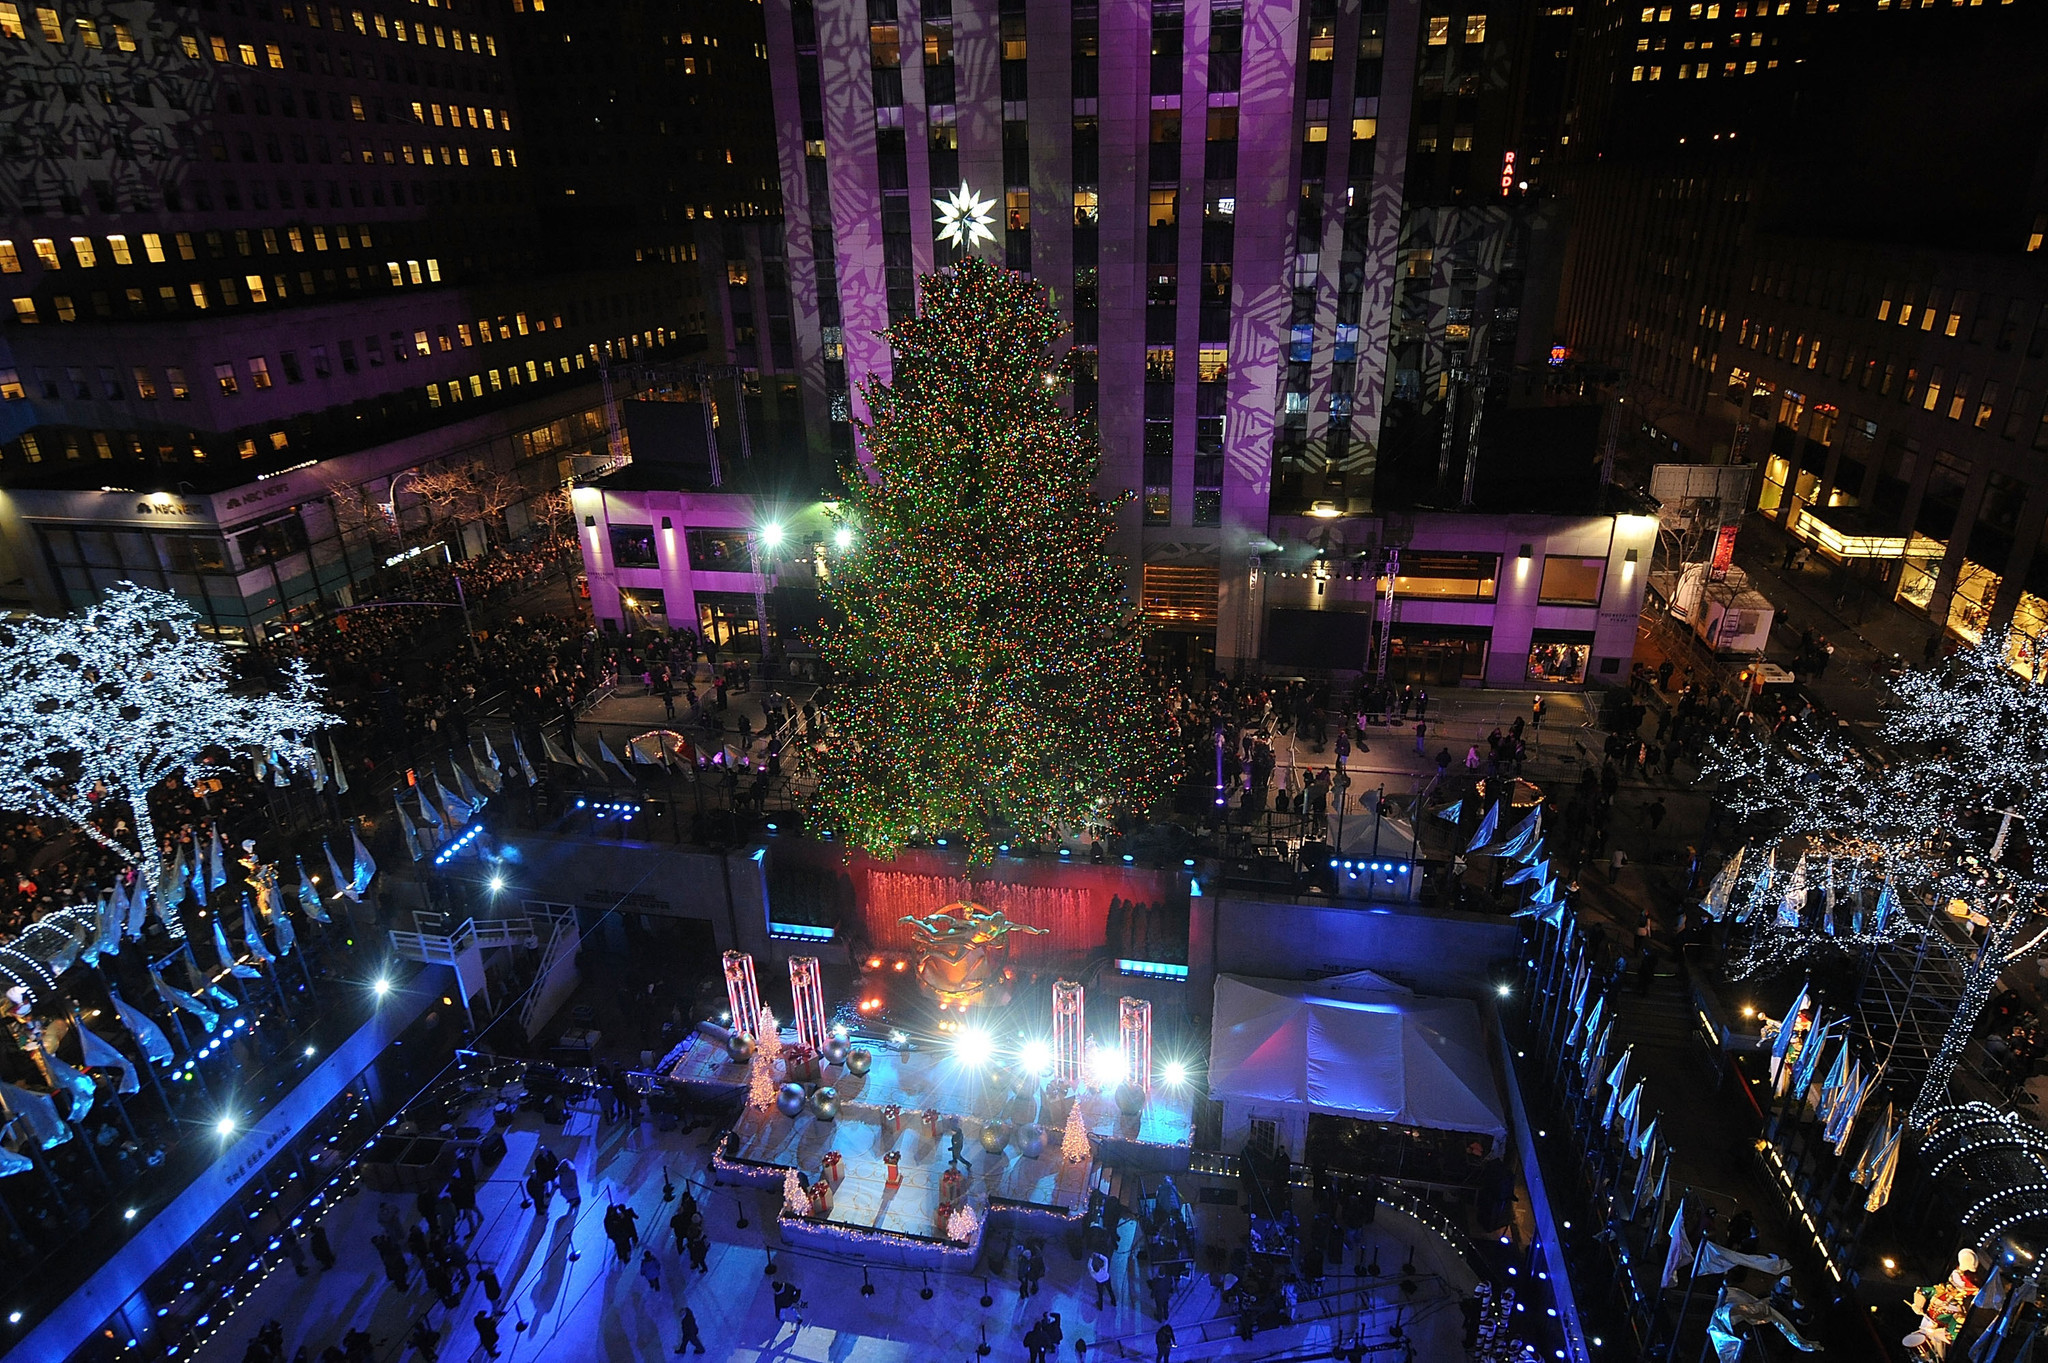 NYC to close streets around Rockefeller Christmas tree during holiday season